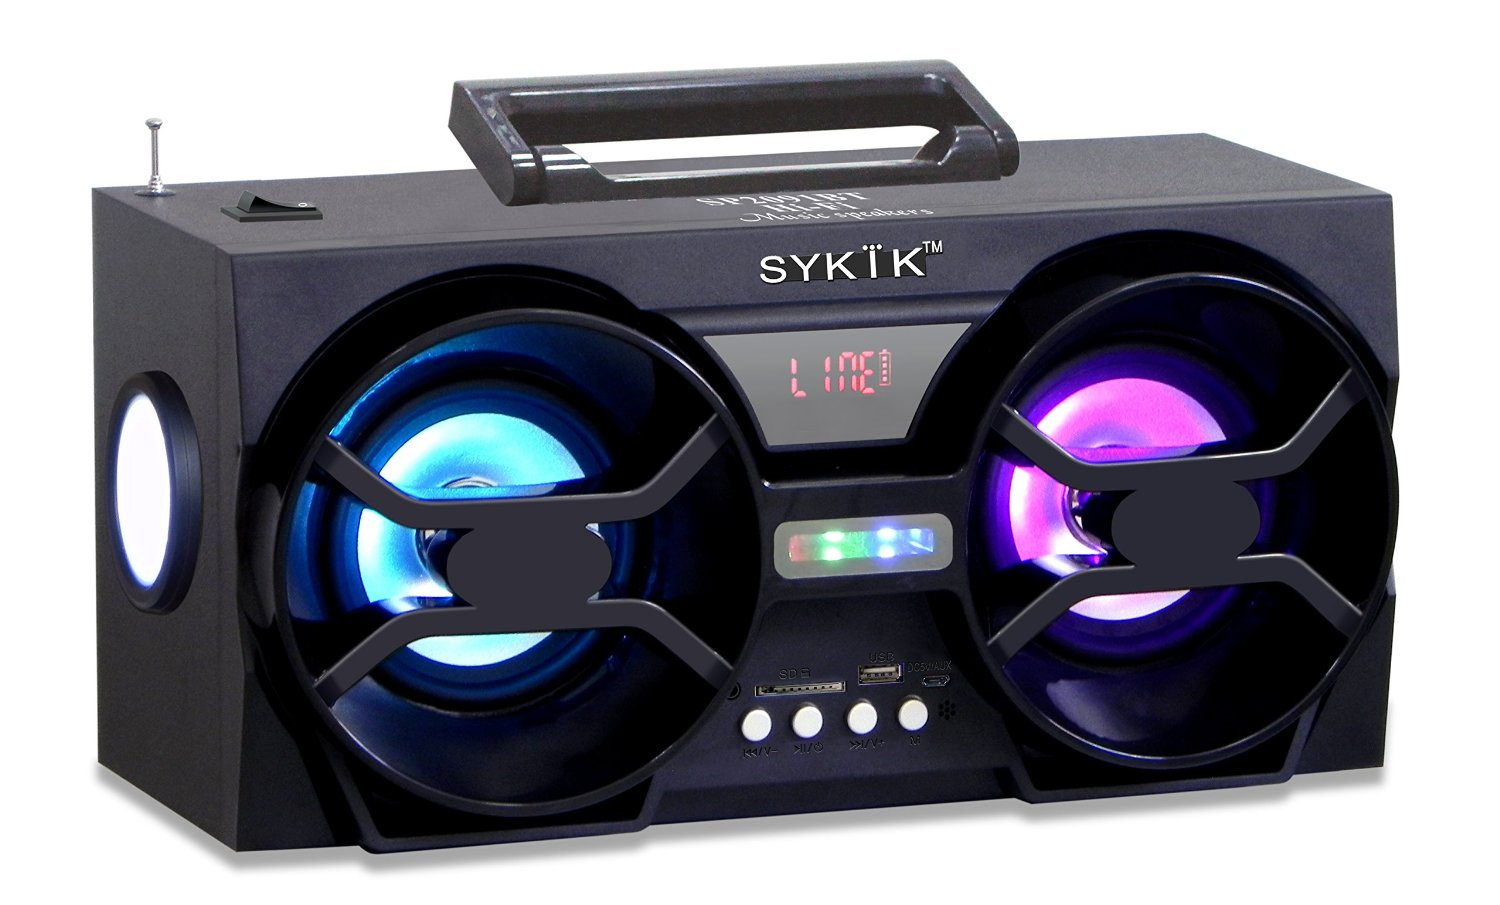 Sykik SP2091BT, Bluetooth Boombox with SD/MMC/USB, FM radio, bui